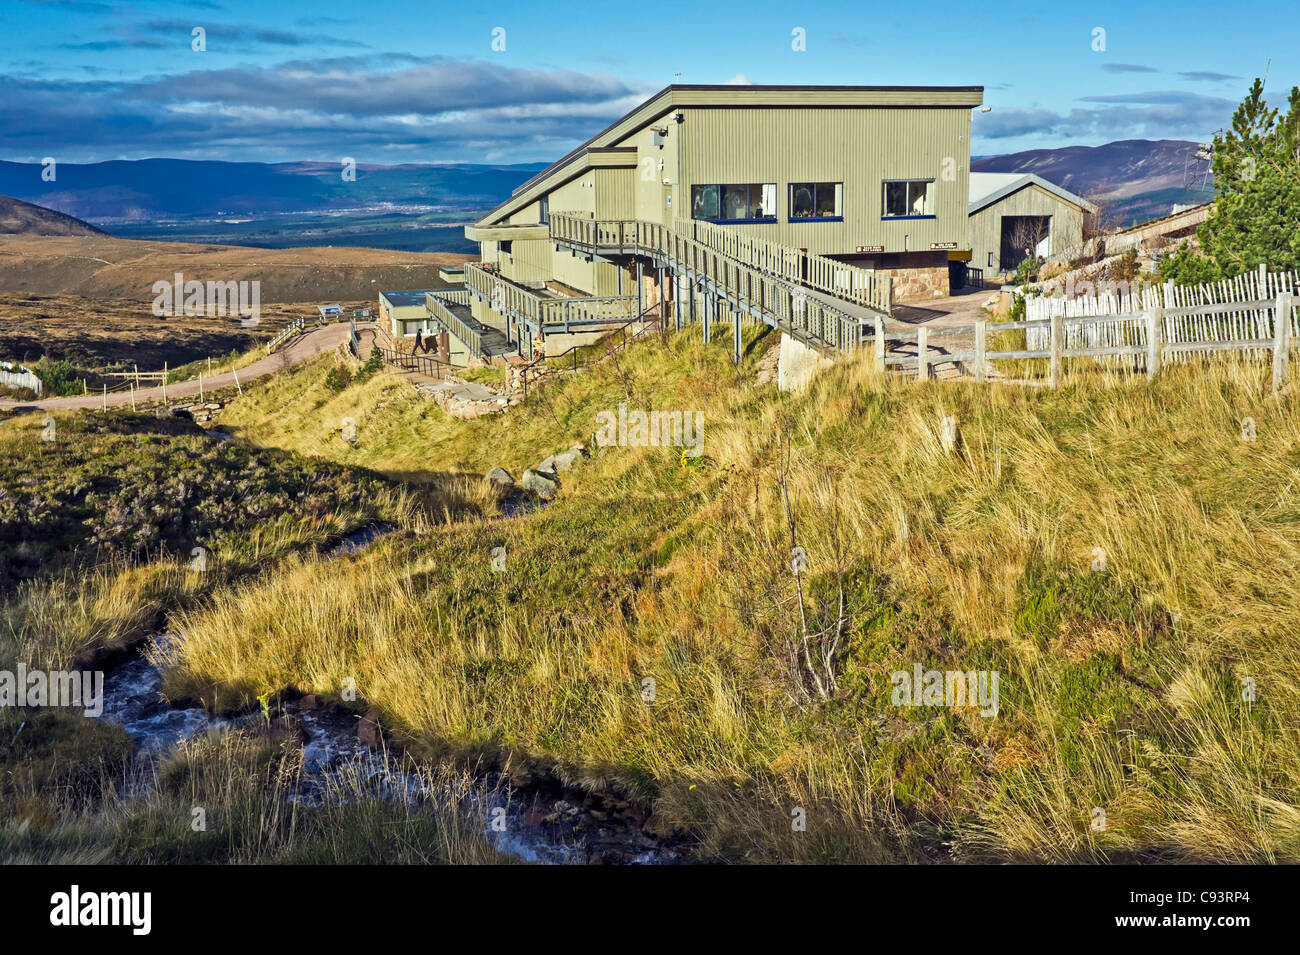 The Cairngorm Mountain funicular installation on Cairn Gorm in Cairngorm National Park Scotland - Stock Image